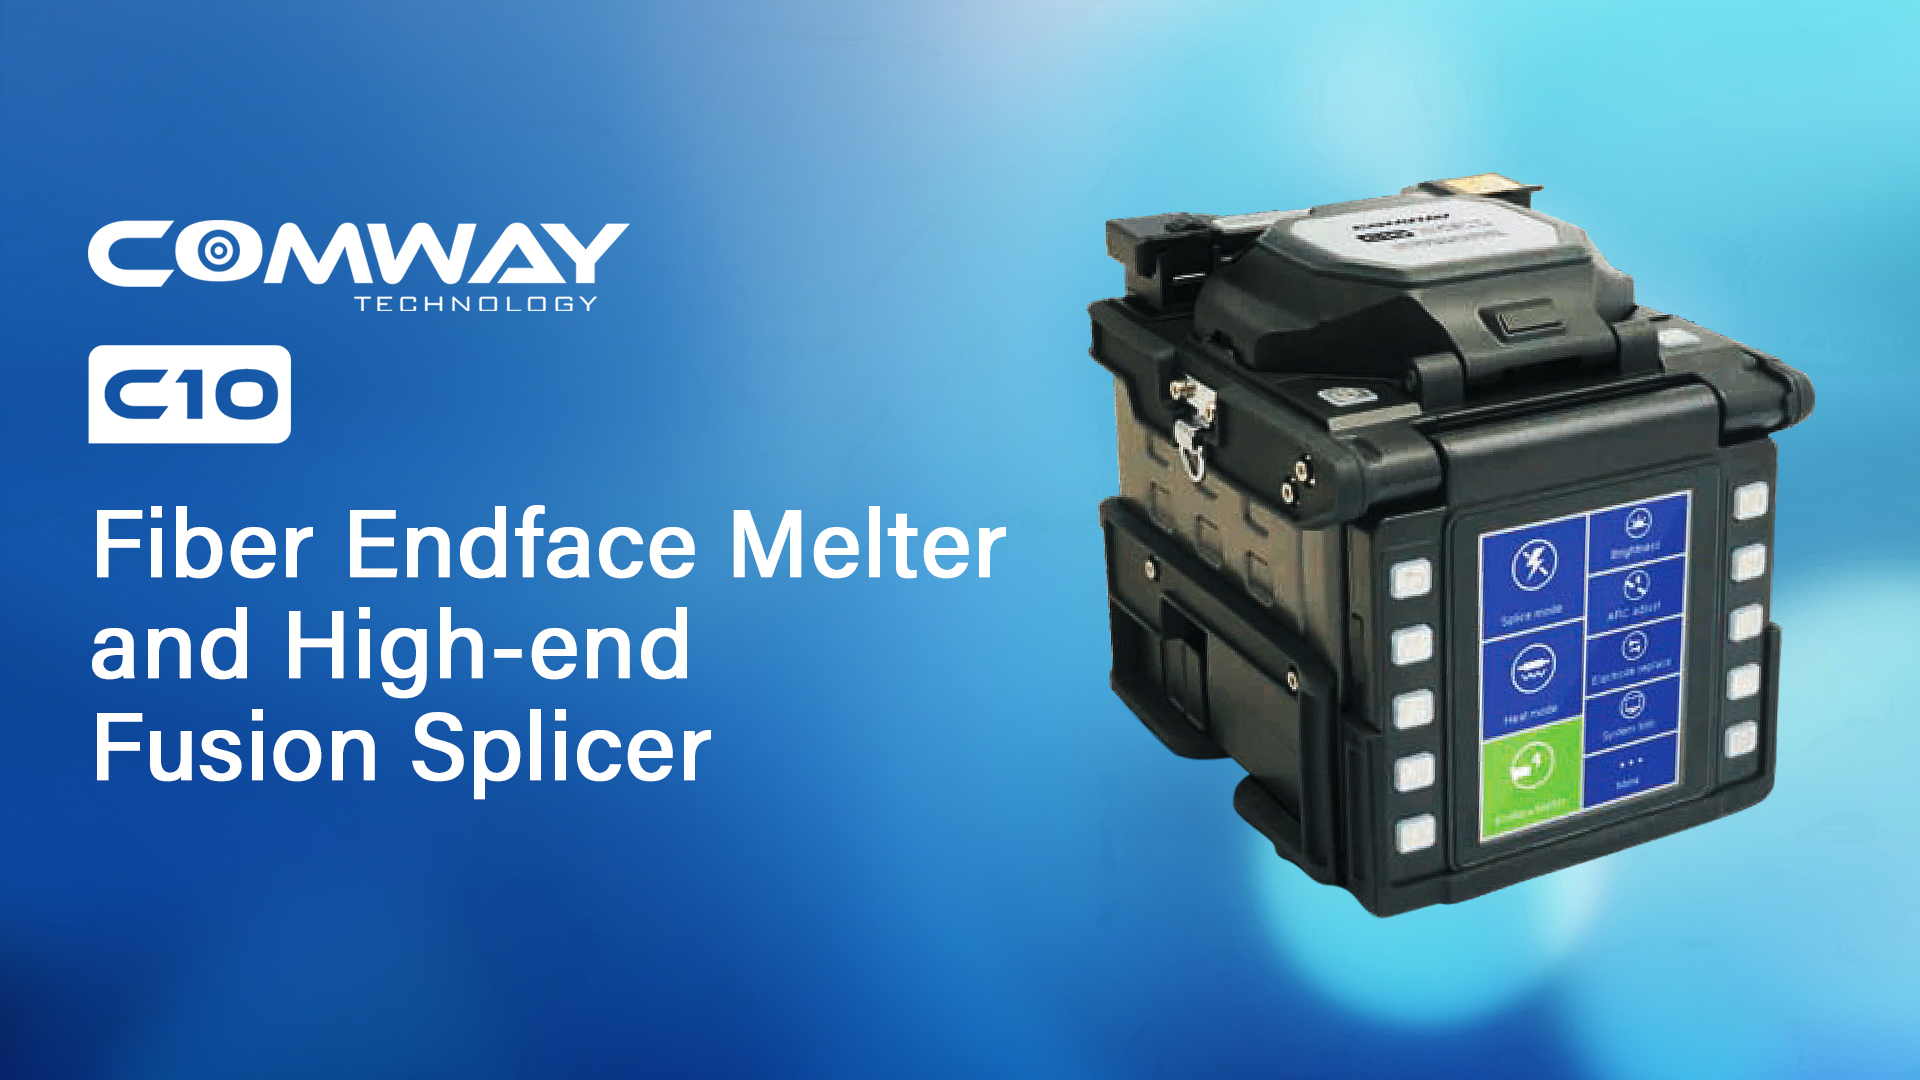 Comway C10 Fiber Endface Melter and High-end Splicer